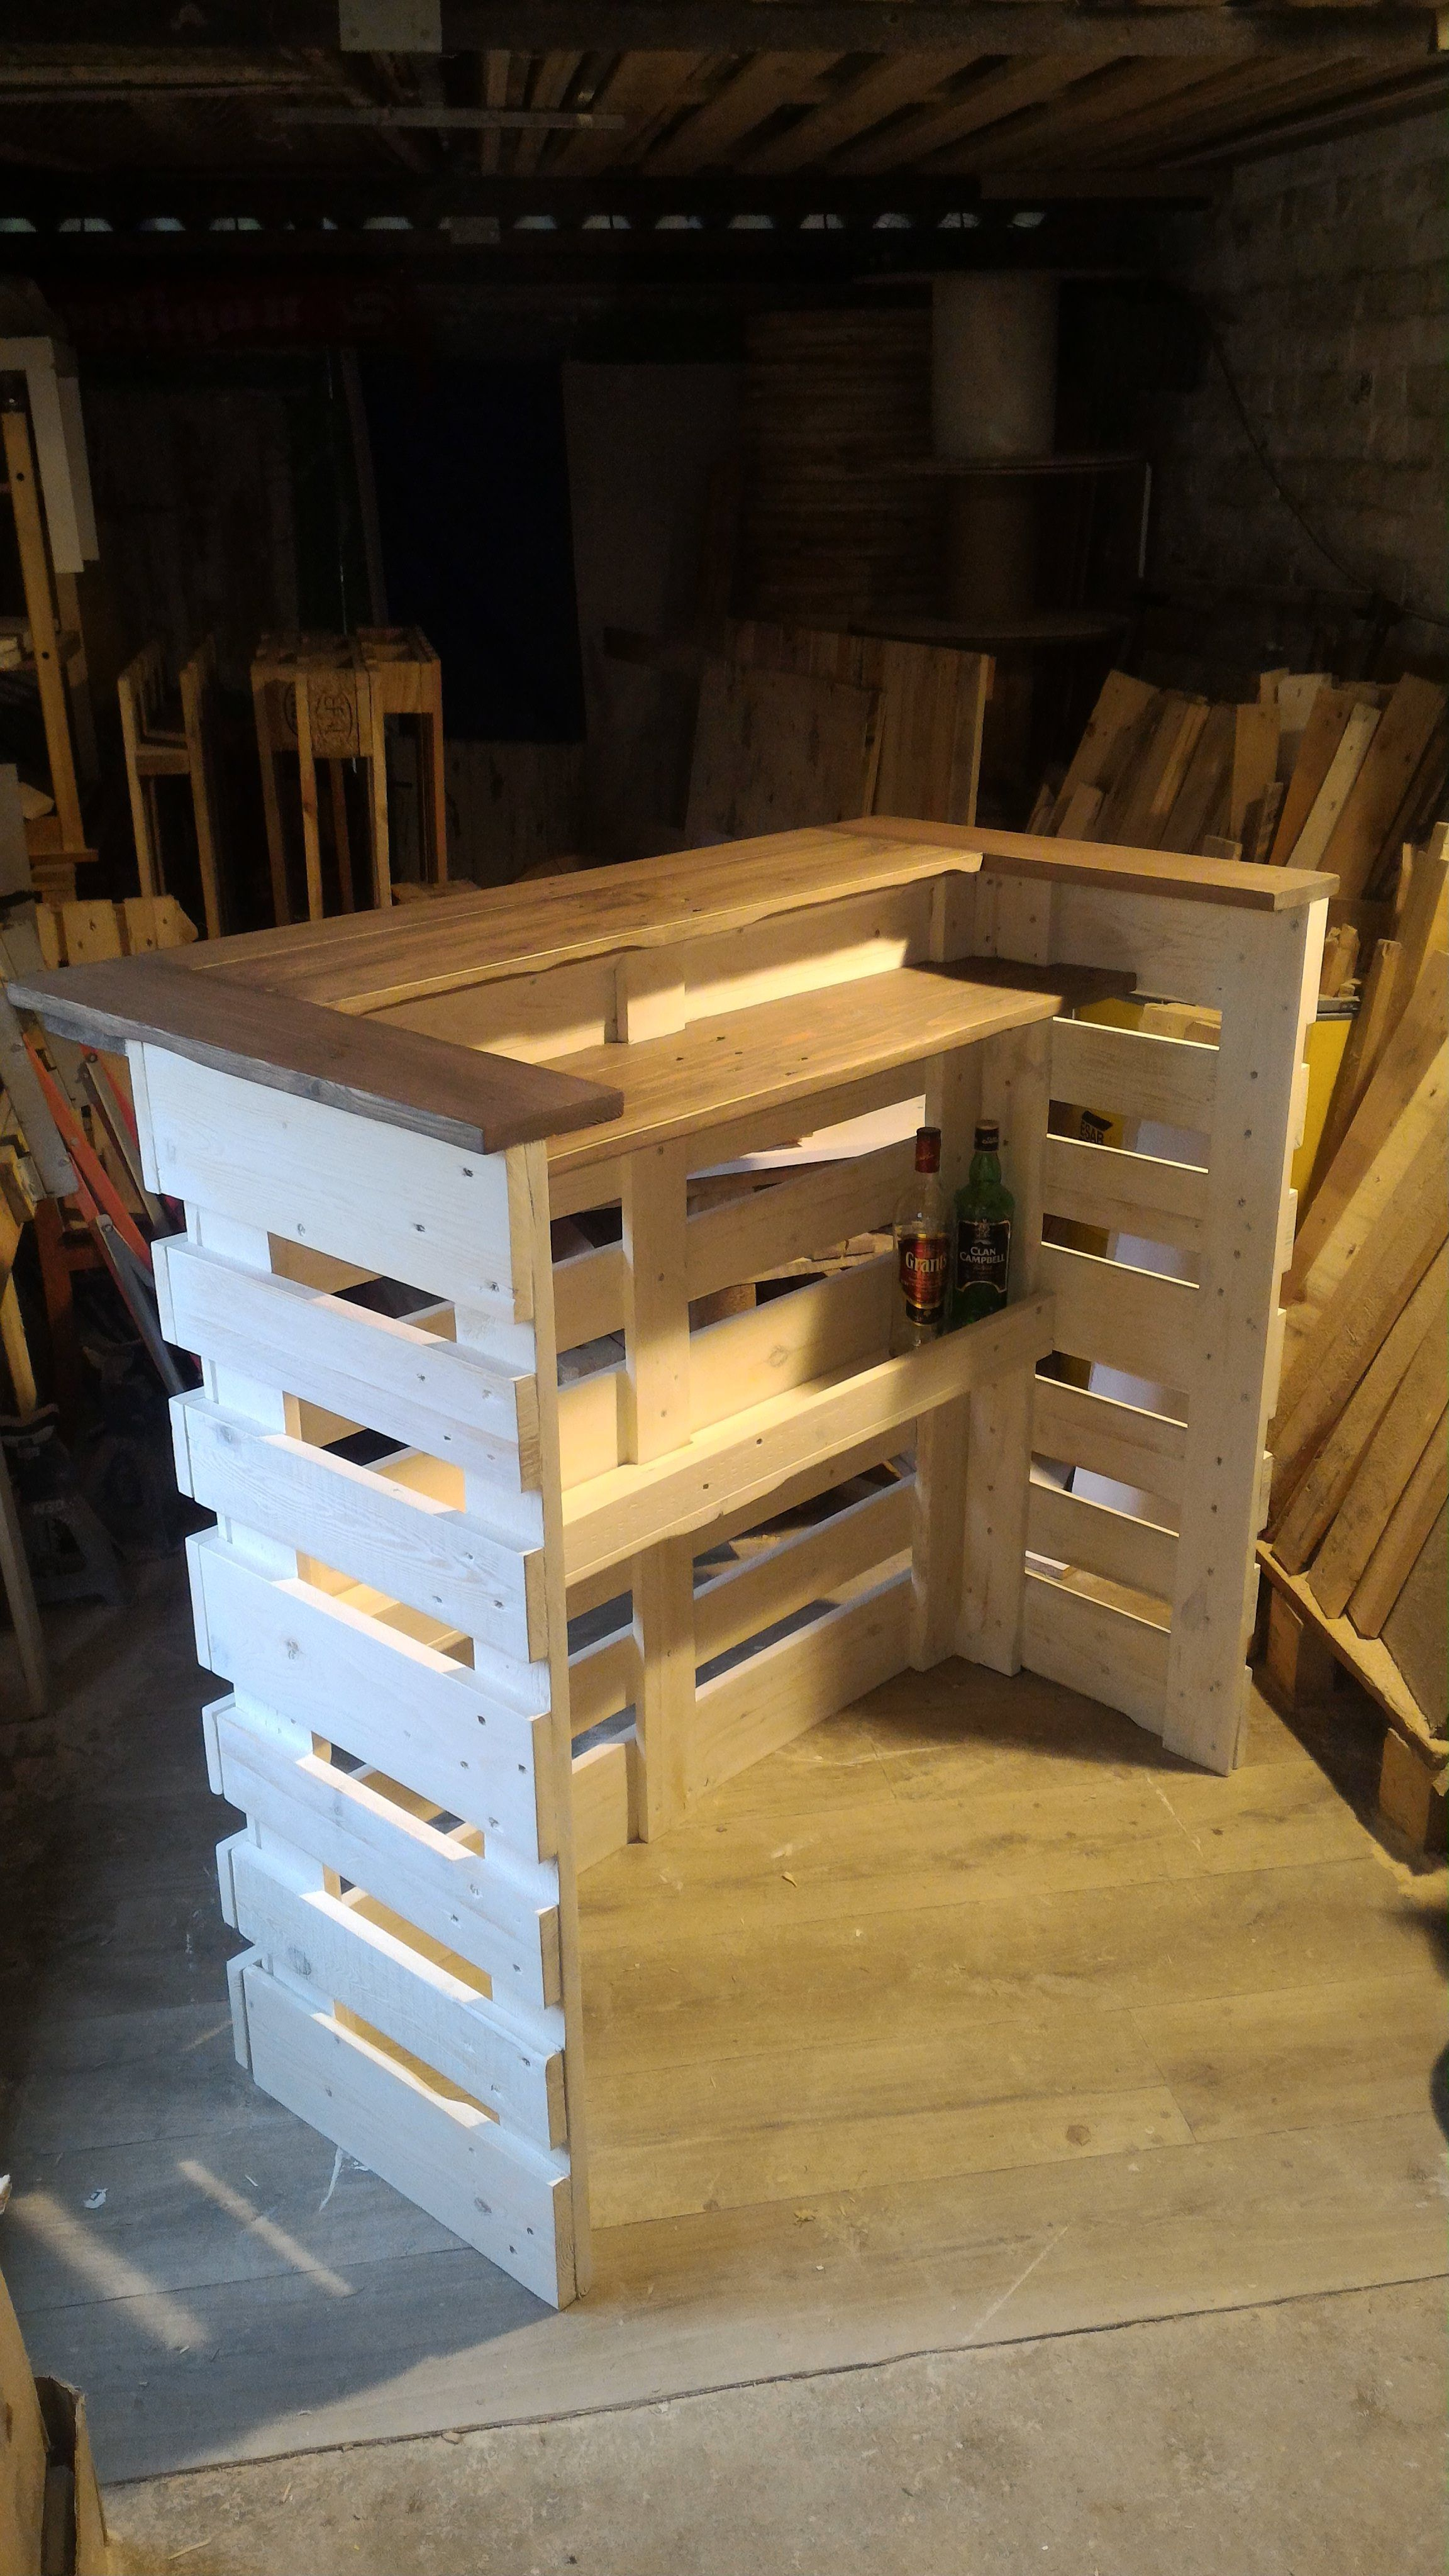 Awesome Pallet Console Bar #console #palletbar #recyclingwoodpallets I built  this console bar with